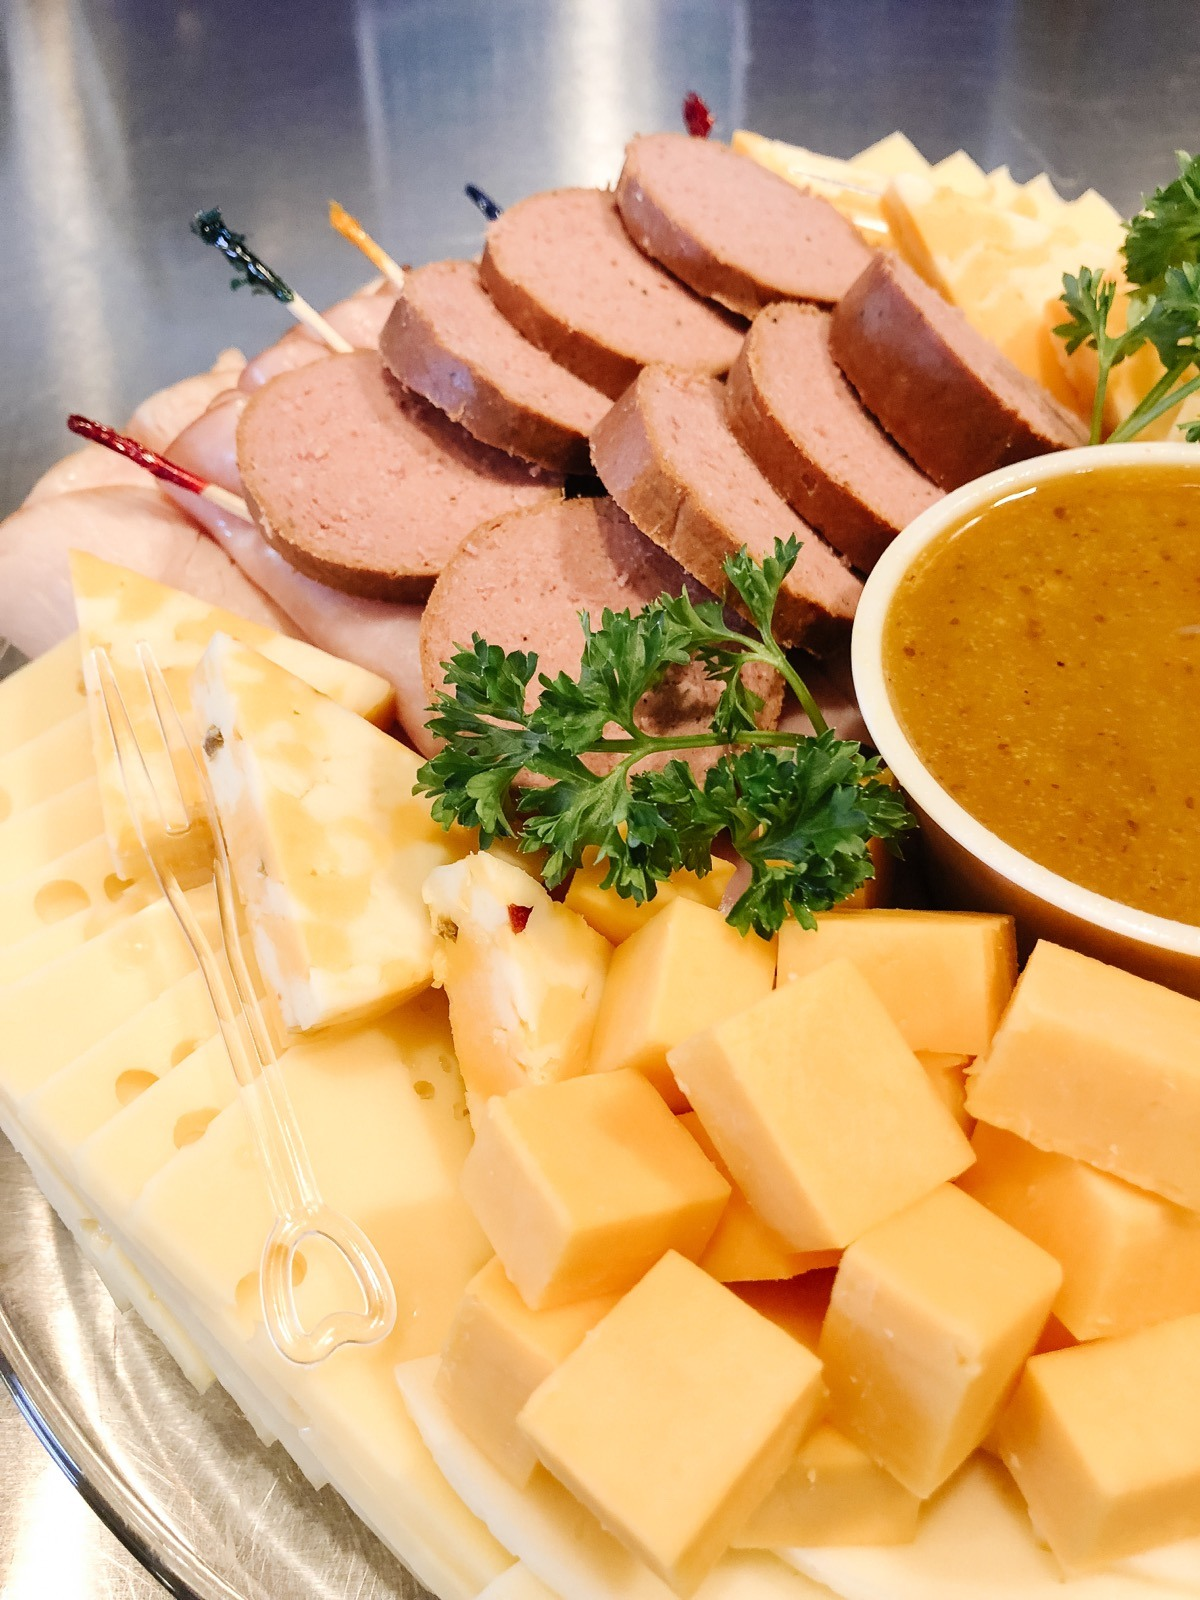 Meat-and-Cheese-2.jpg?mtime=20210804183005#asset:1985